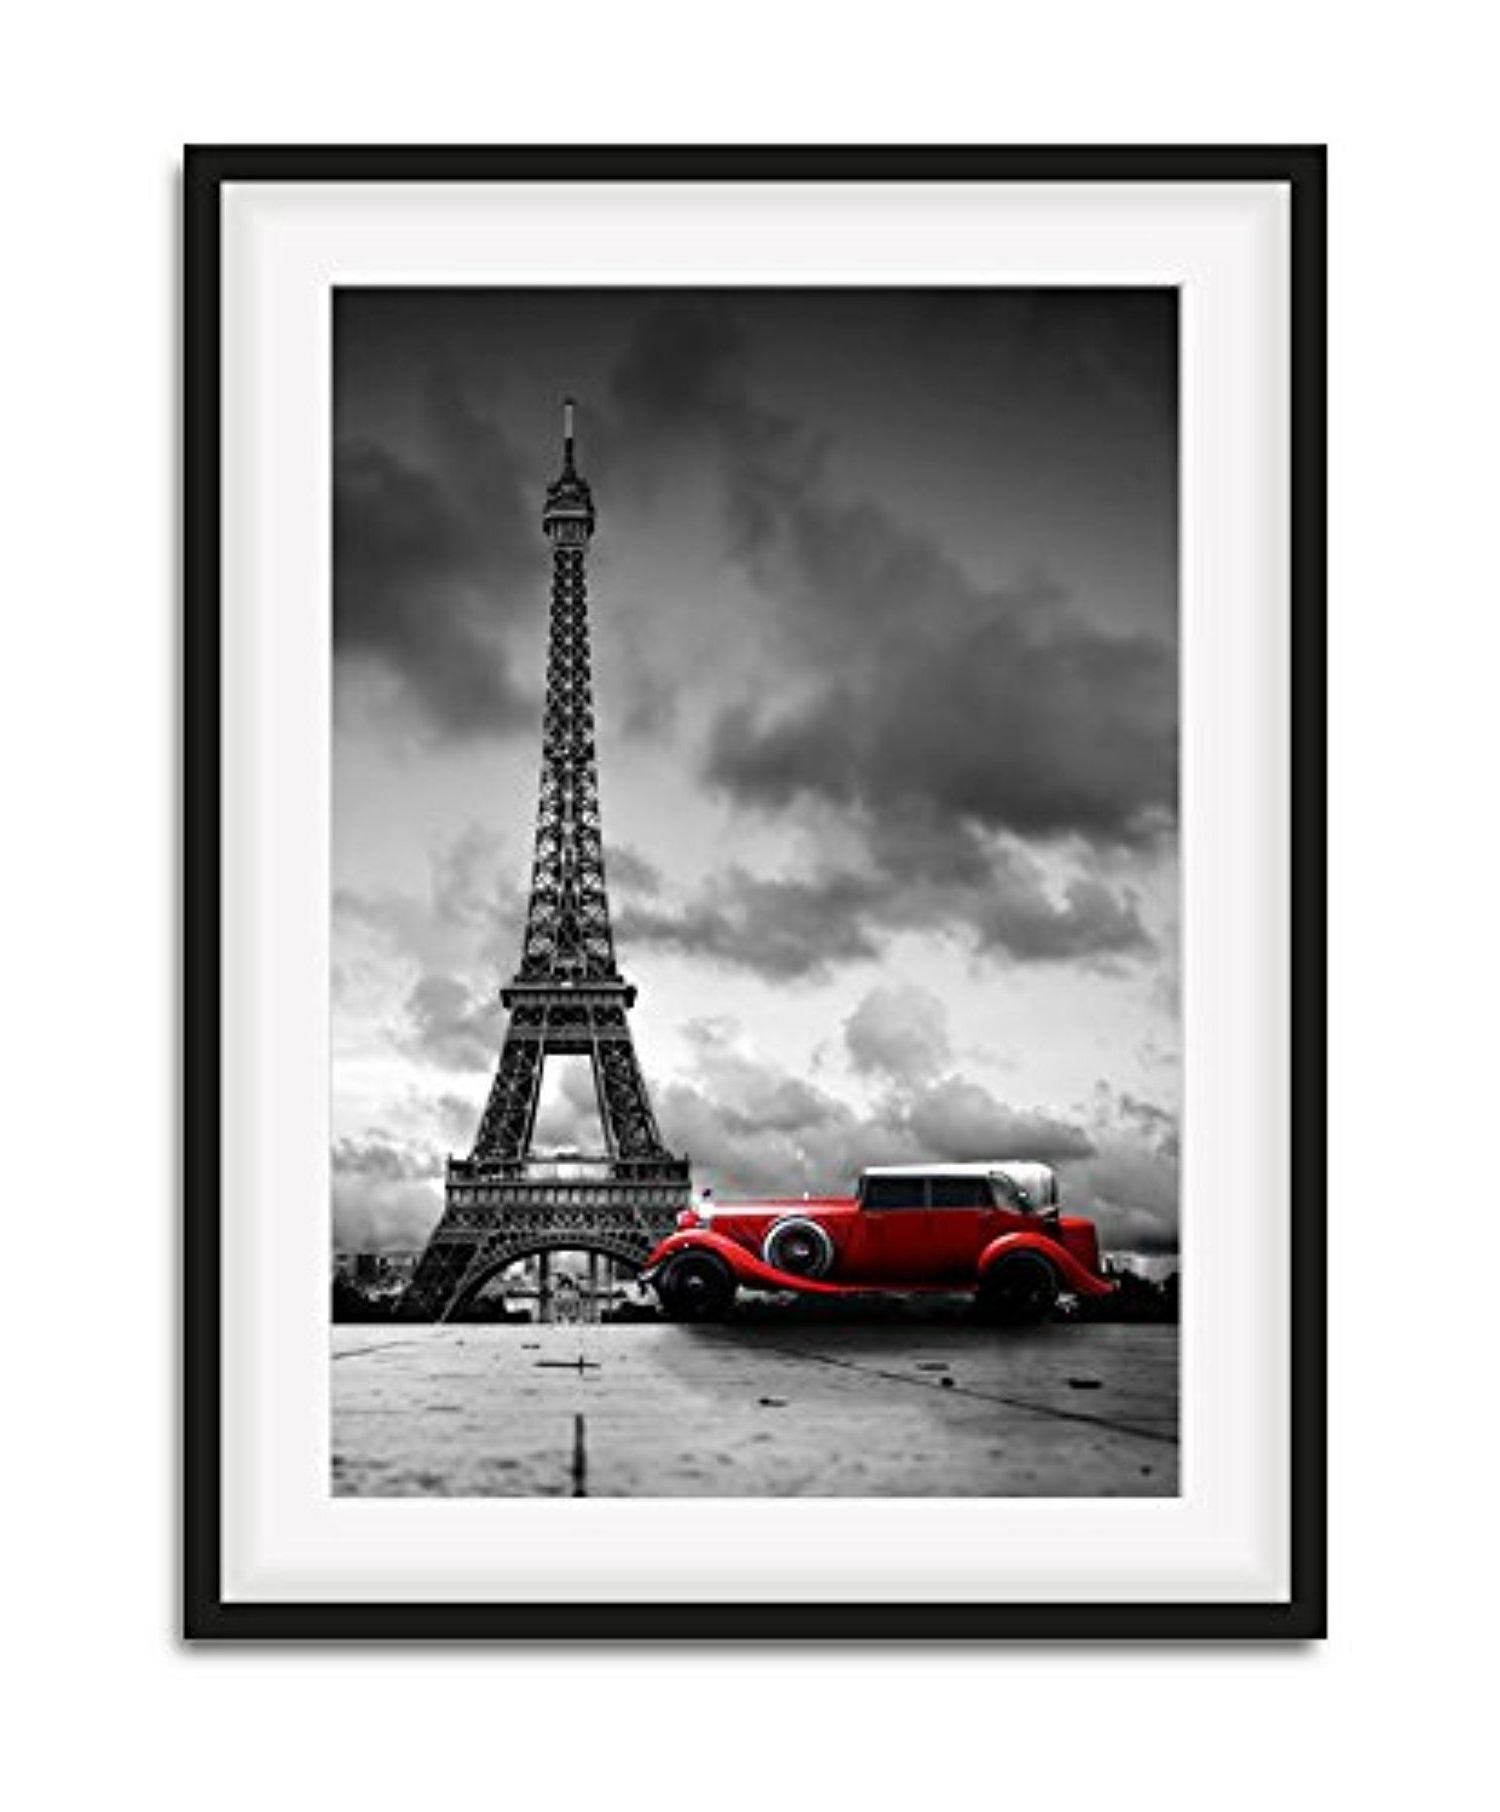 Newest Modern Framed Wall Art, Eiffel Tower And Red Car Picture Canvas Wall Regarding Modern Framed Wall Art Canvas (View 13 of 15)